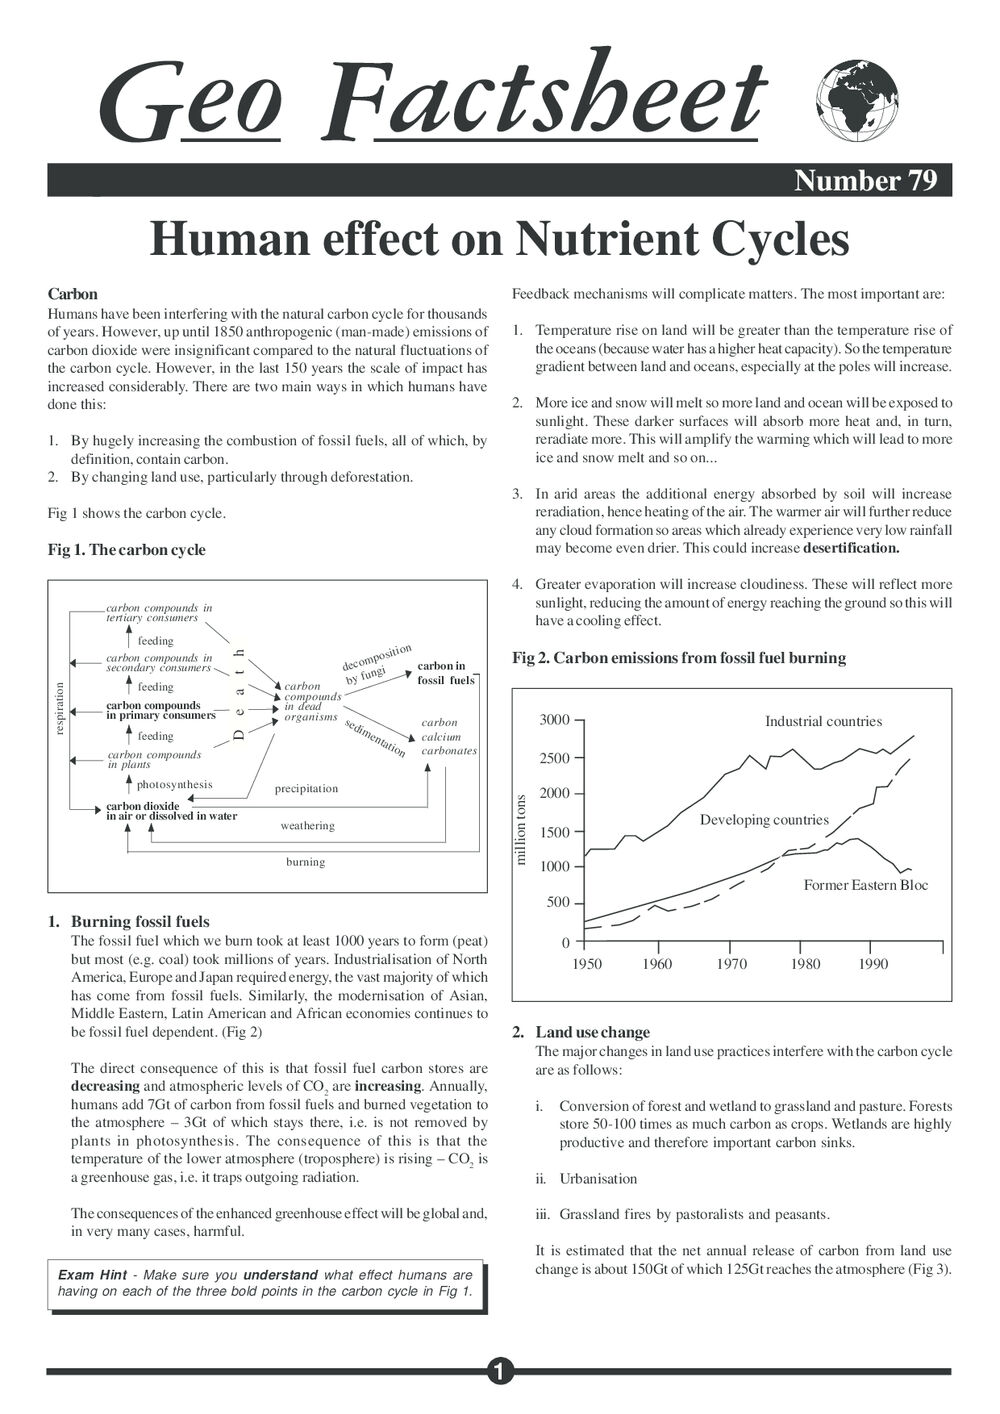 079 Human Effect Nutrient Cycles